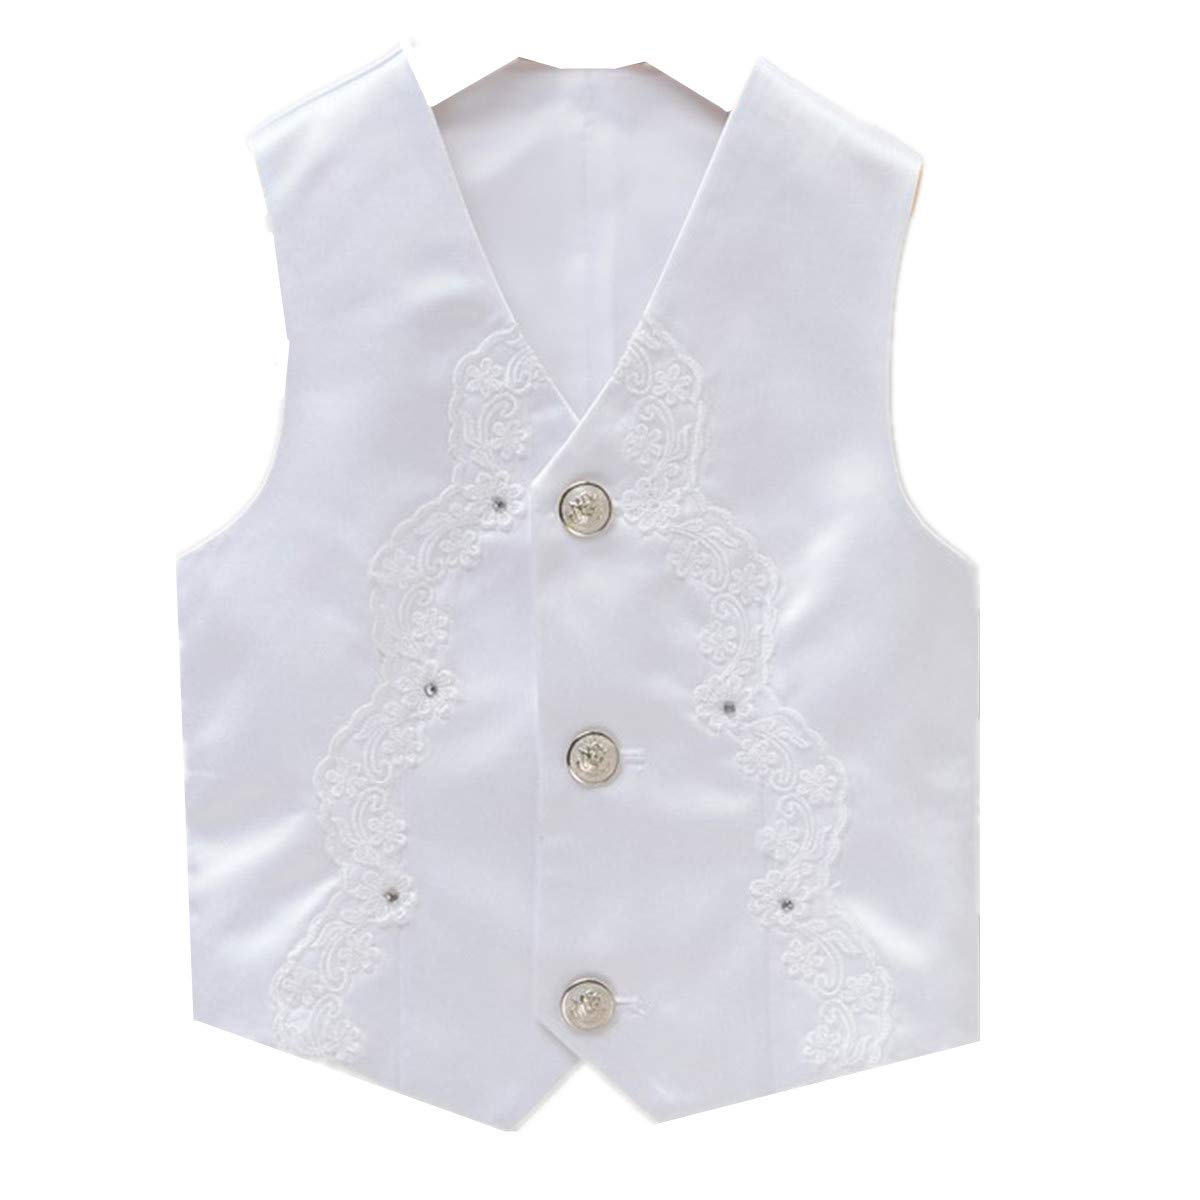 LJYH boy's Formal Vest Stylish Stage Performance Waistcoat White/13-14years